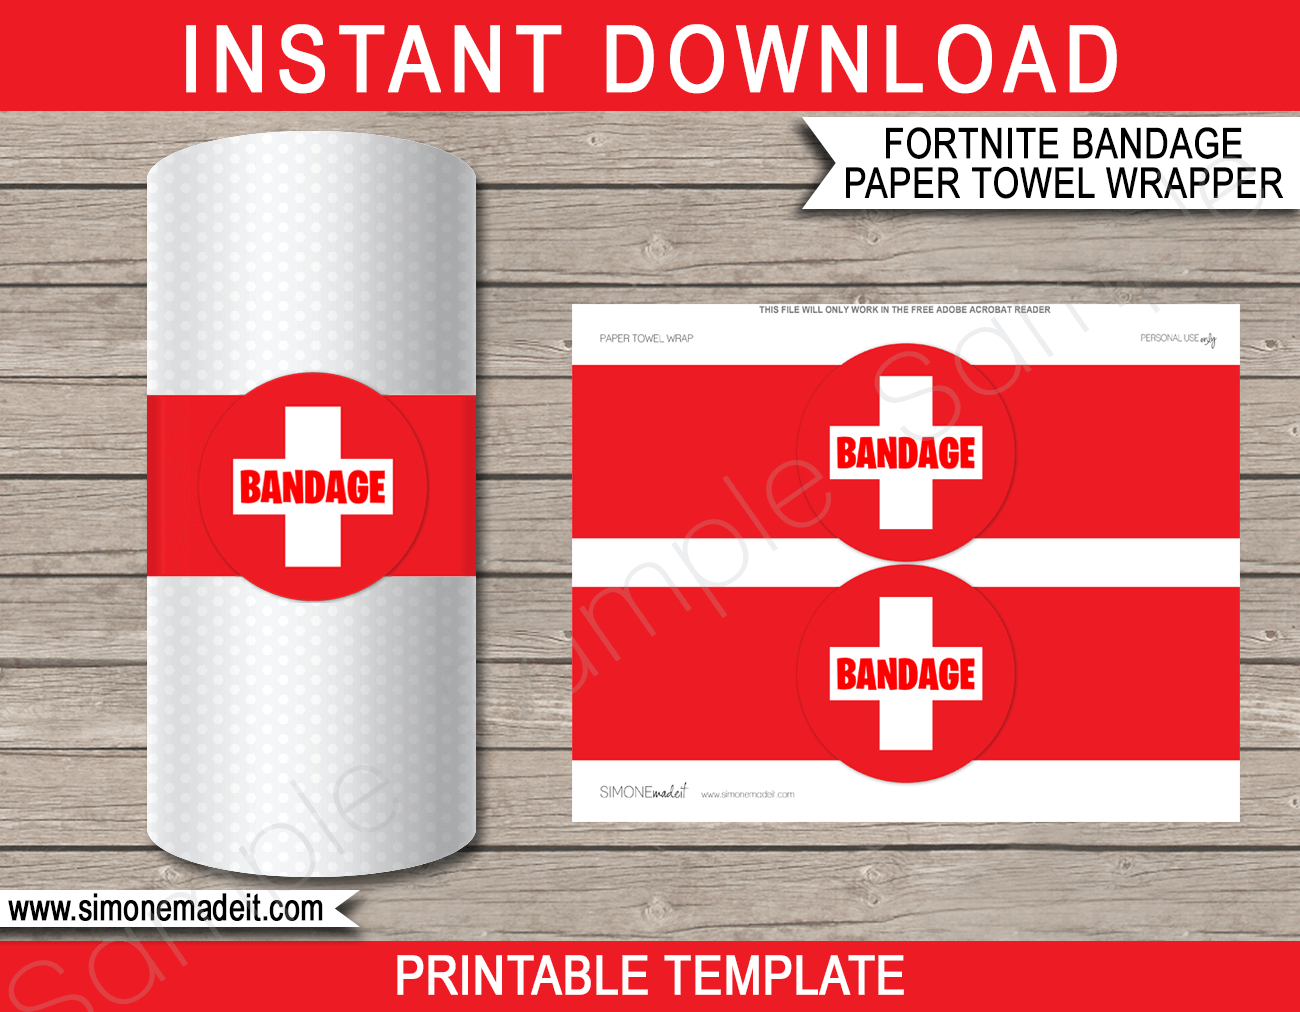 picture relating to Printable Fortnite named Fortnite Bandage Paper Towel template